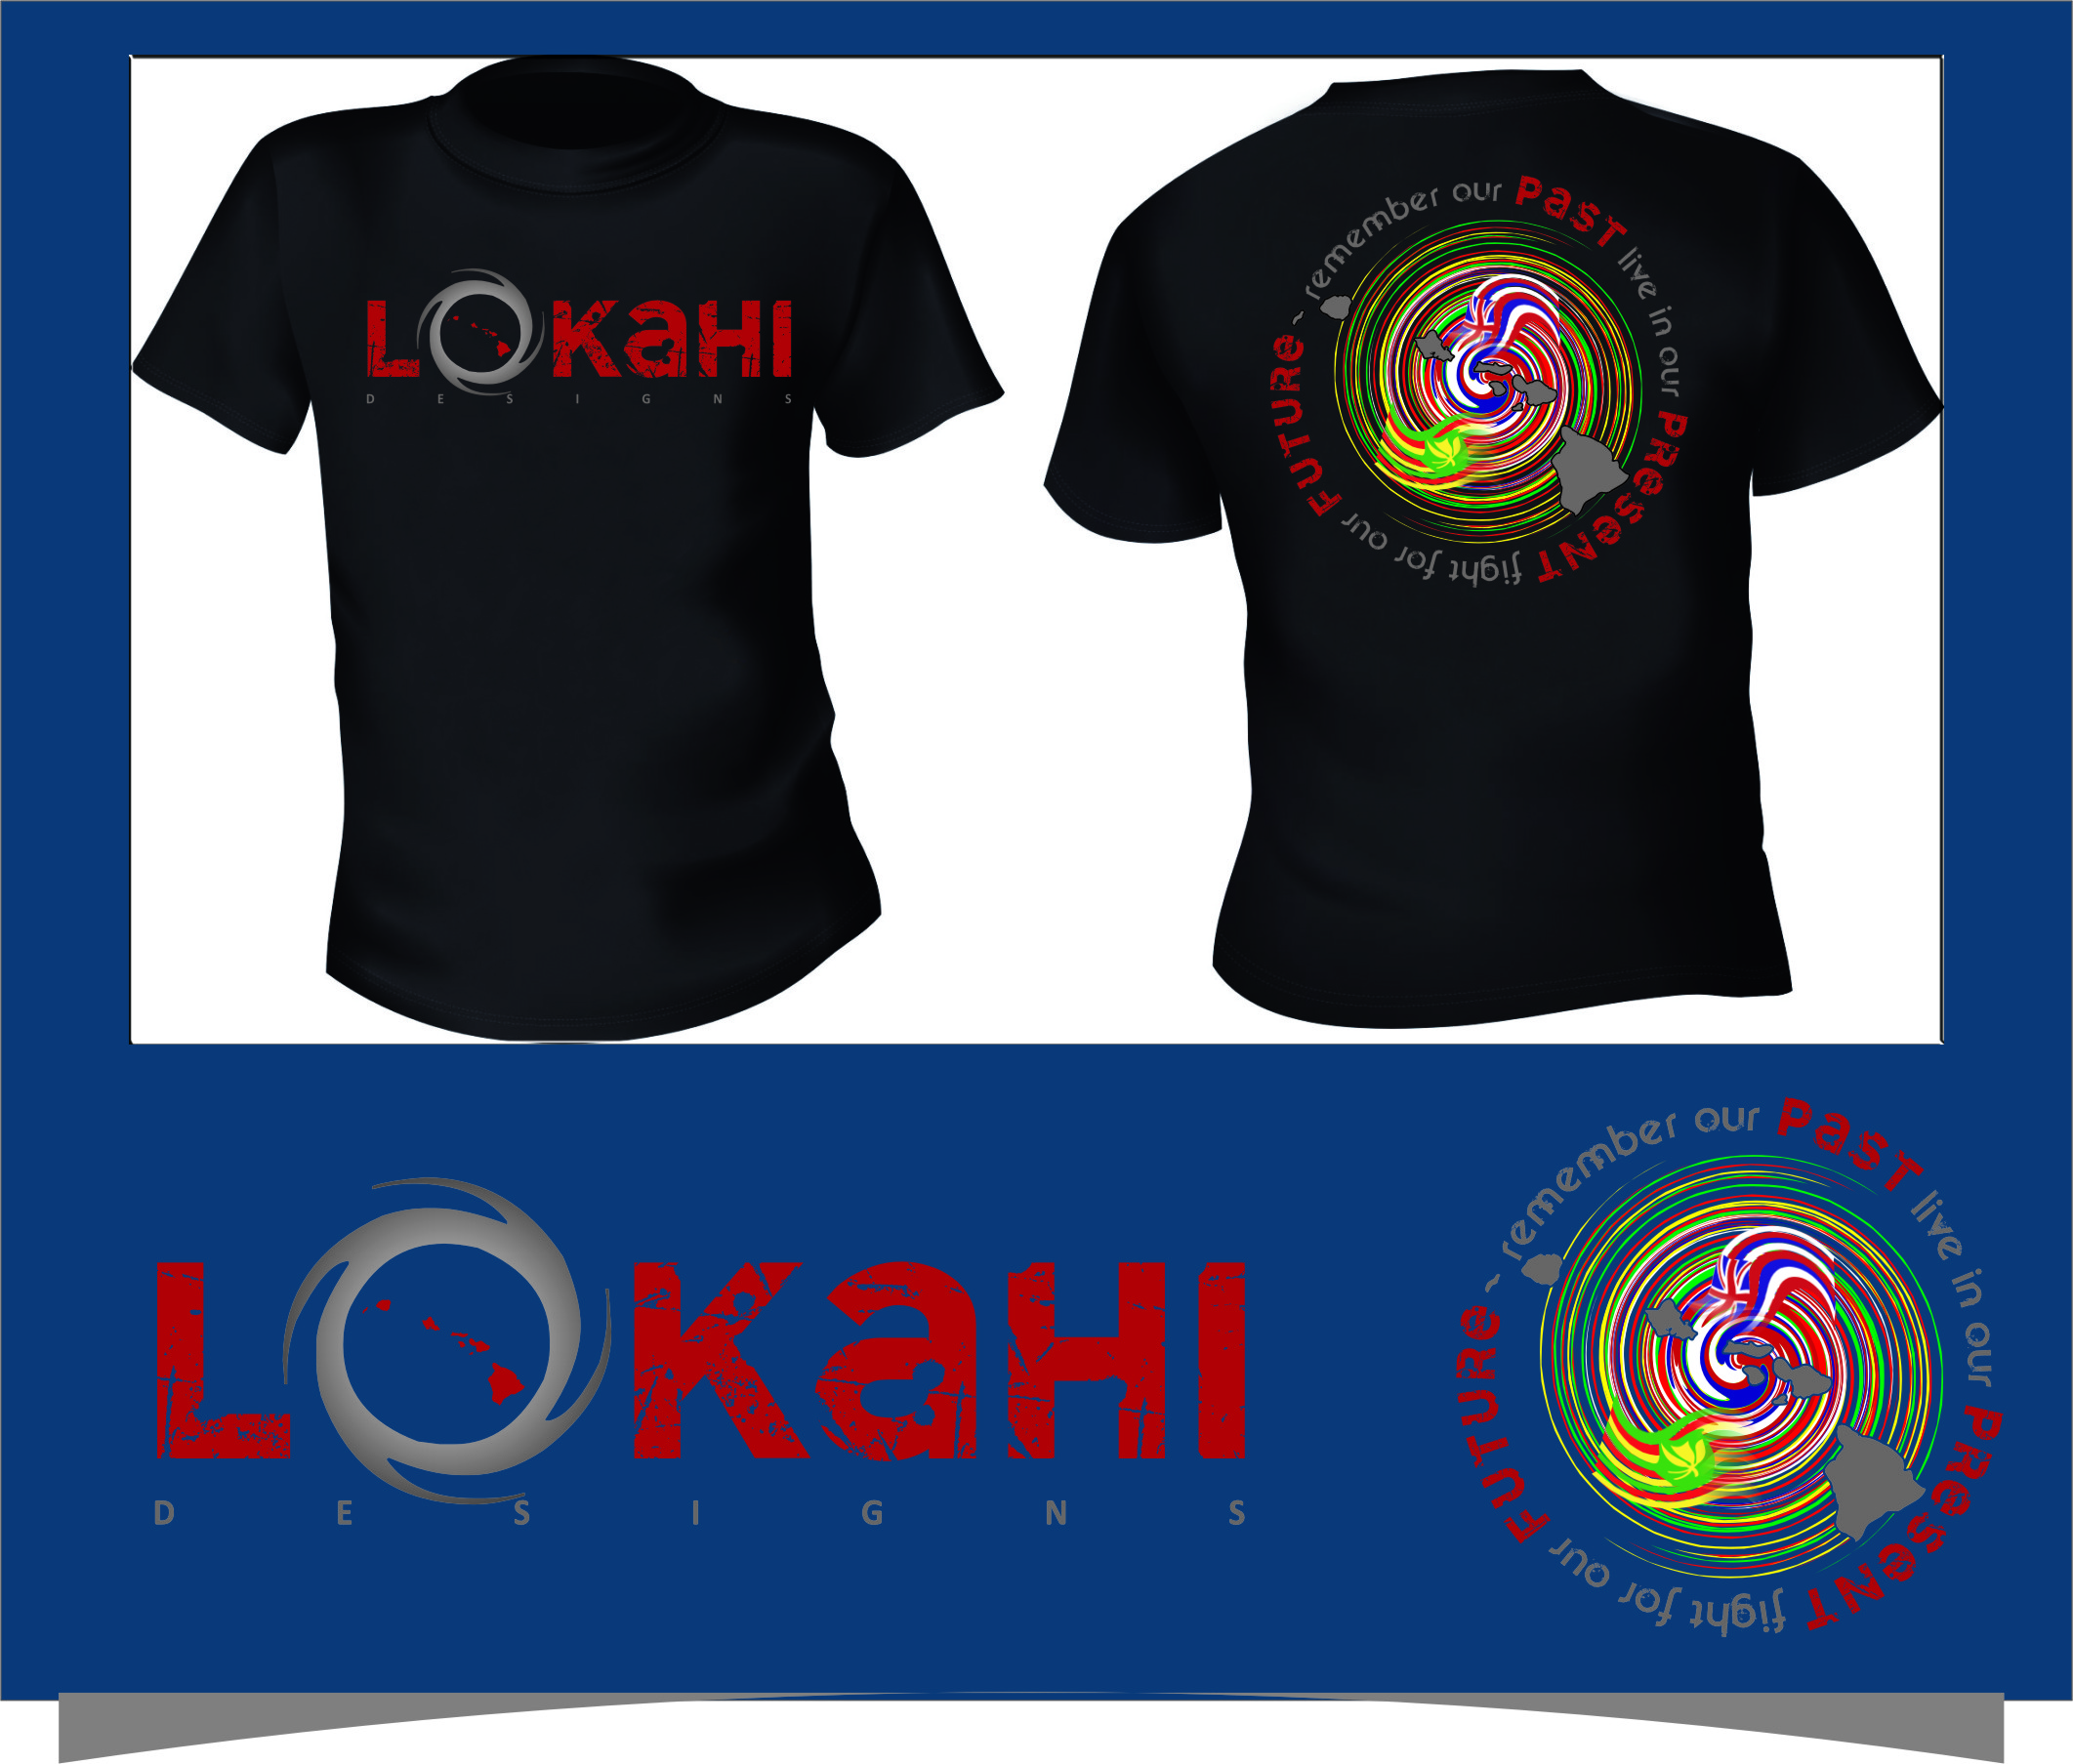 Clothing Design by Ngepet_art - Entry No. 53 in the Clothing Design Contest Creative Clothing Design for LOKAHI designs.